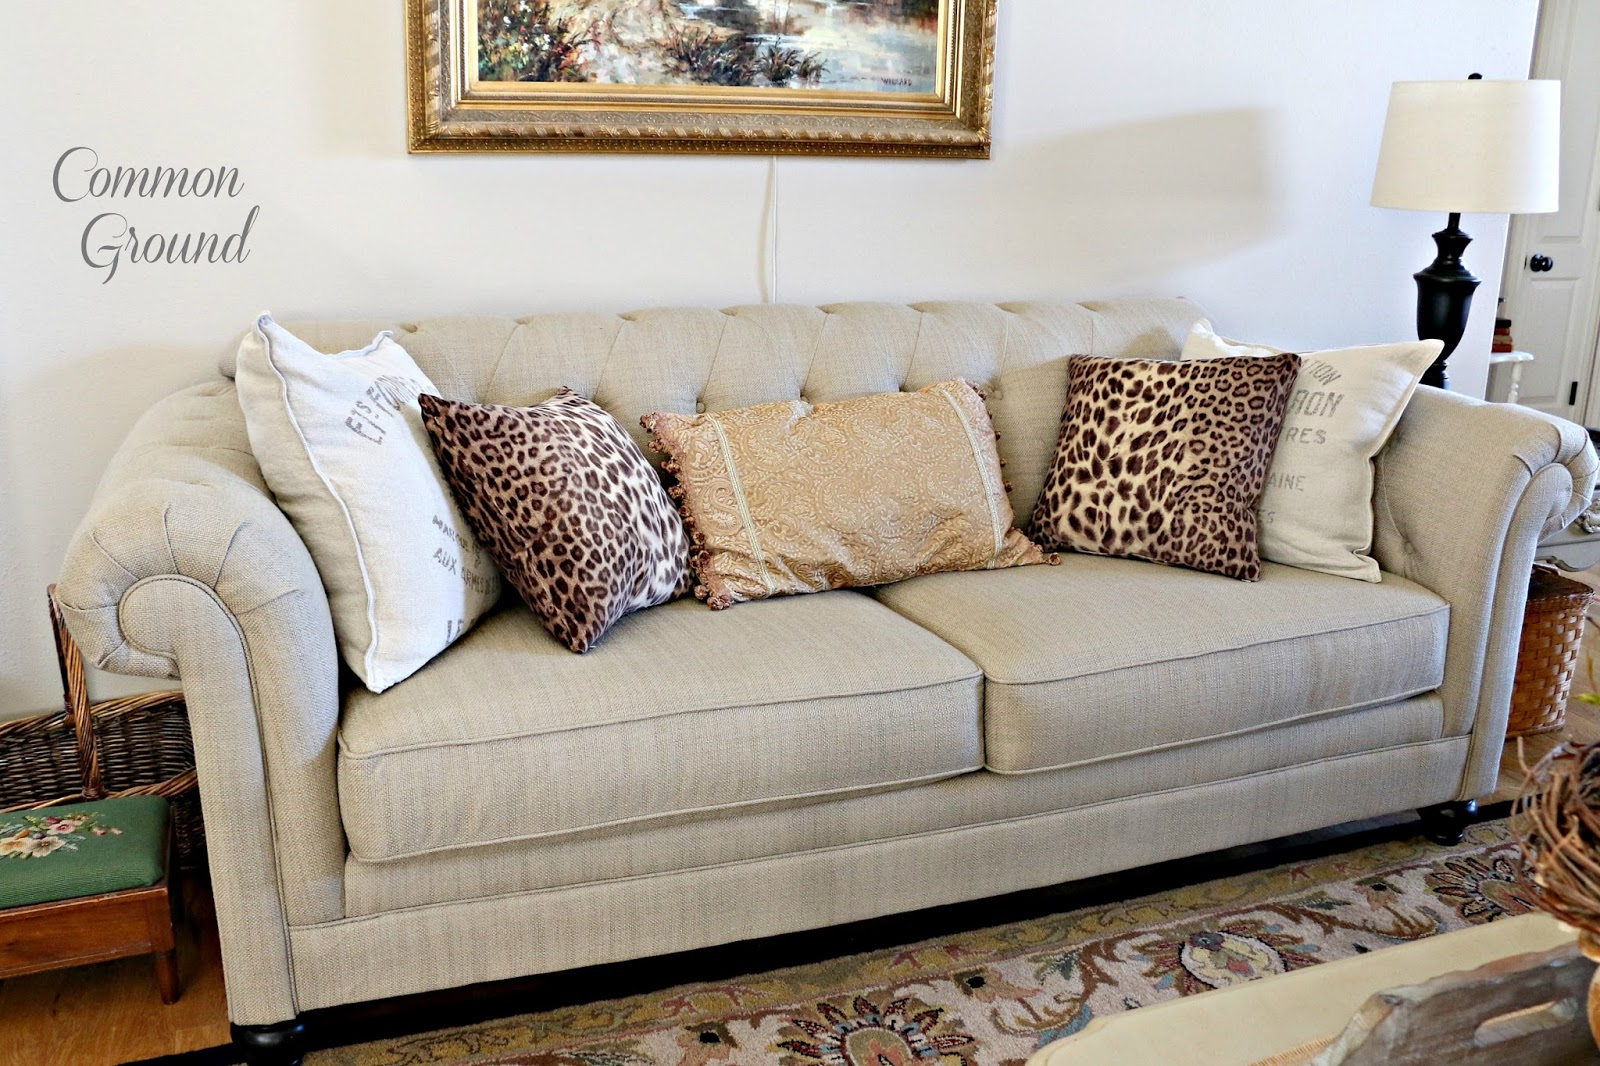 Leopard Print Sofa Appears Villa Paprika Common Ground The Living Room And Pillows